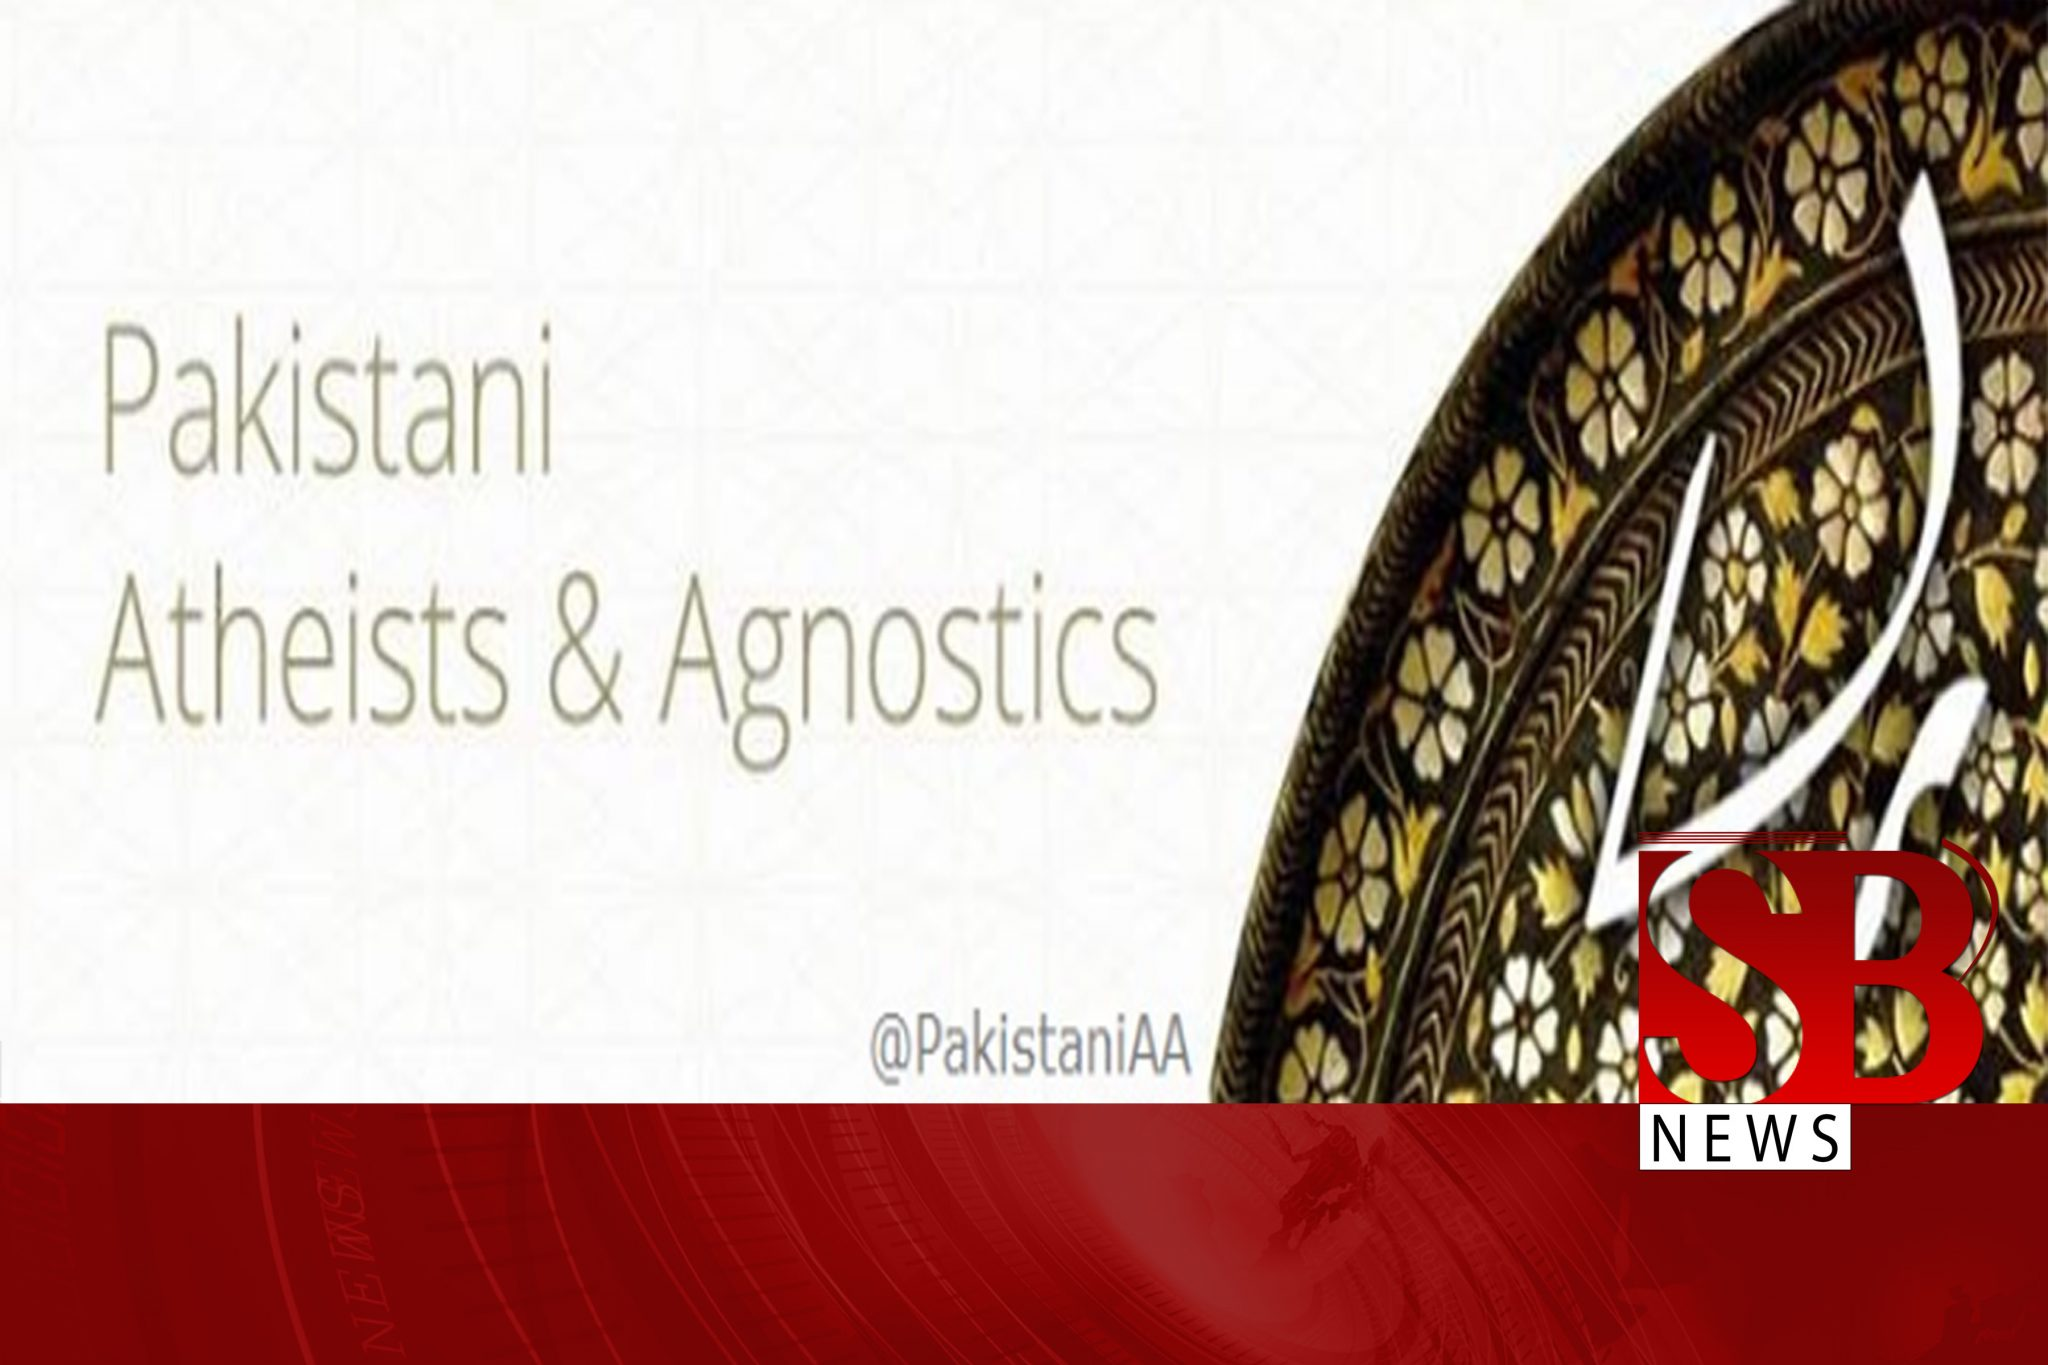 Pakistani Atheists are increasing with the time Recent Survey